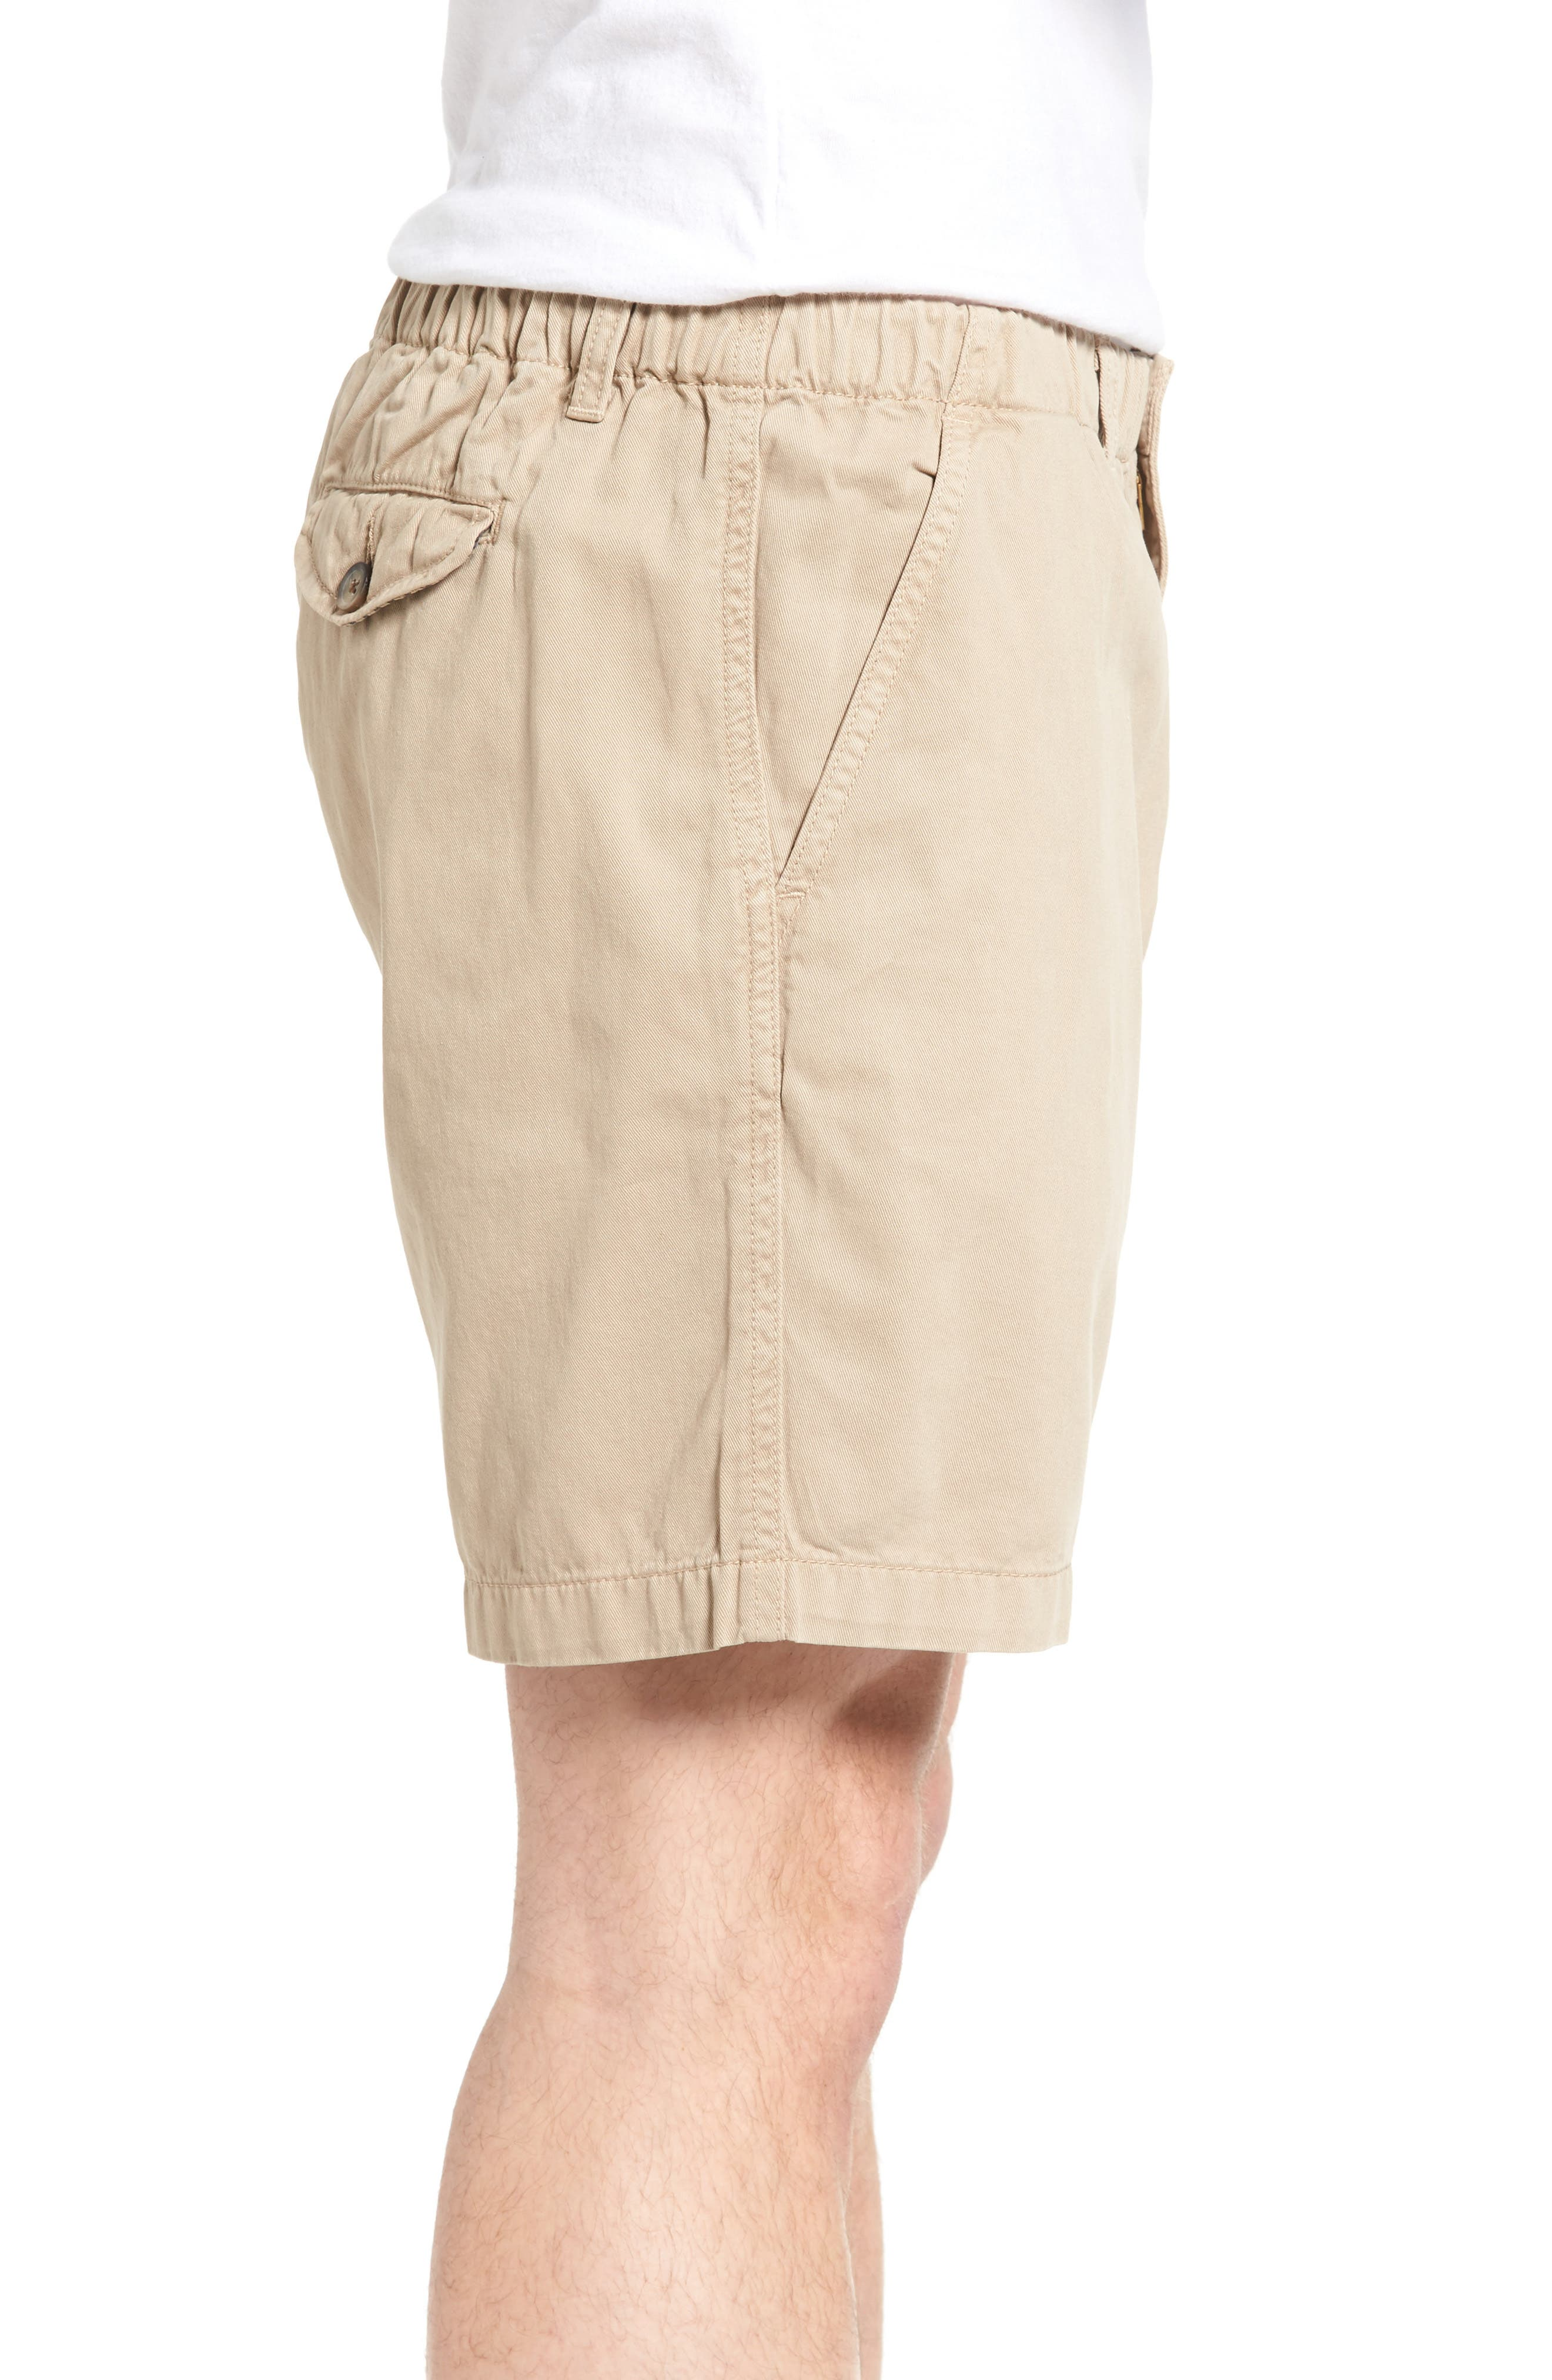 Washed Shorts,                             Alternate thumbnail 3, color,                             250